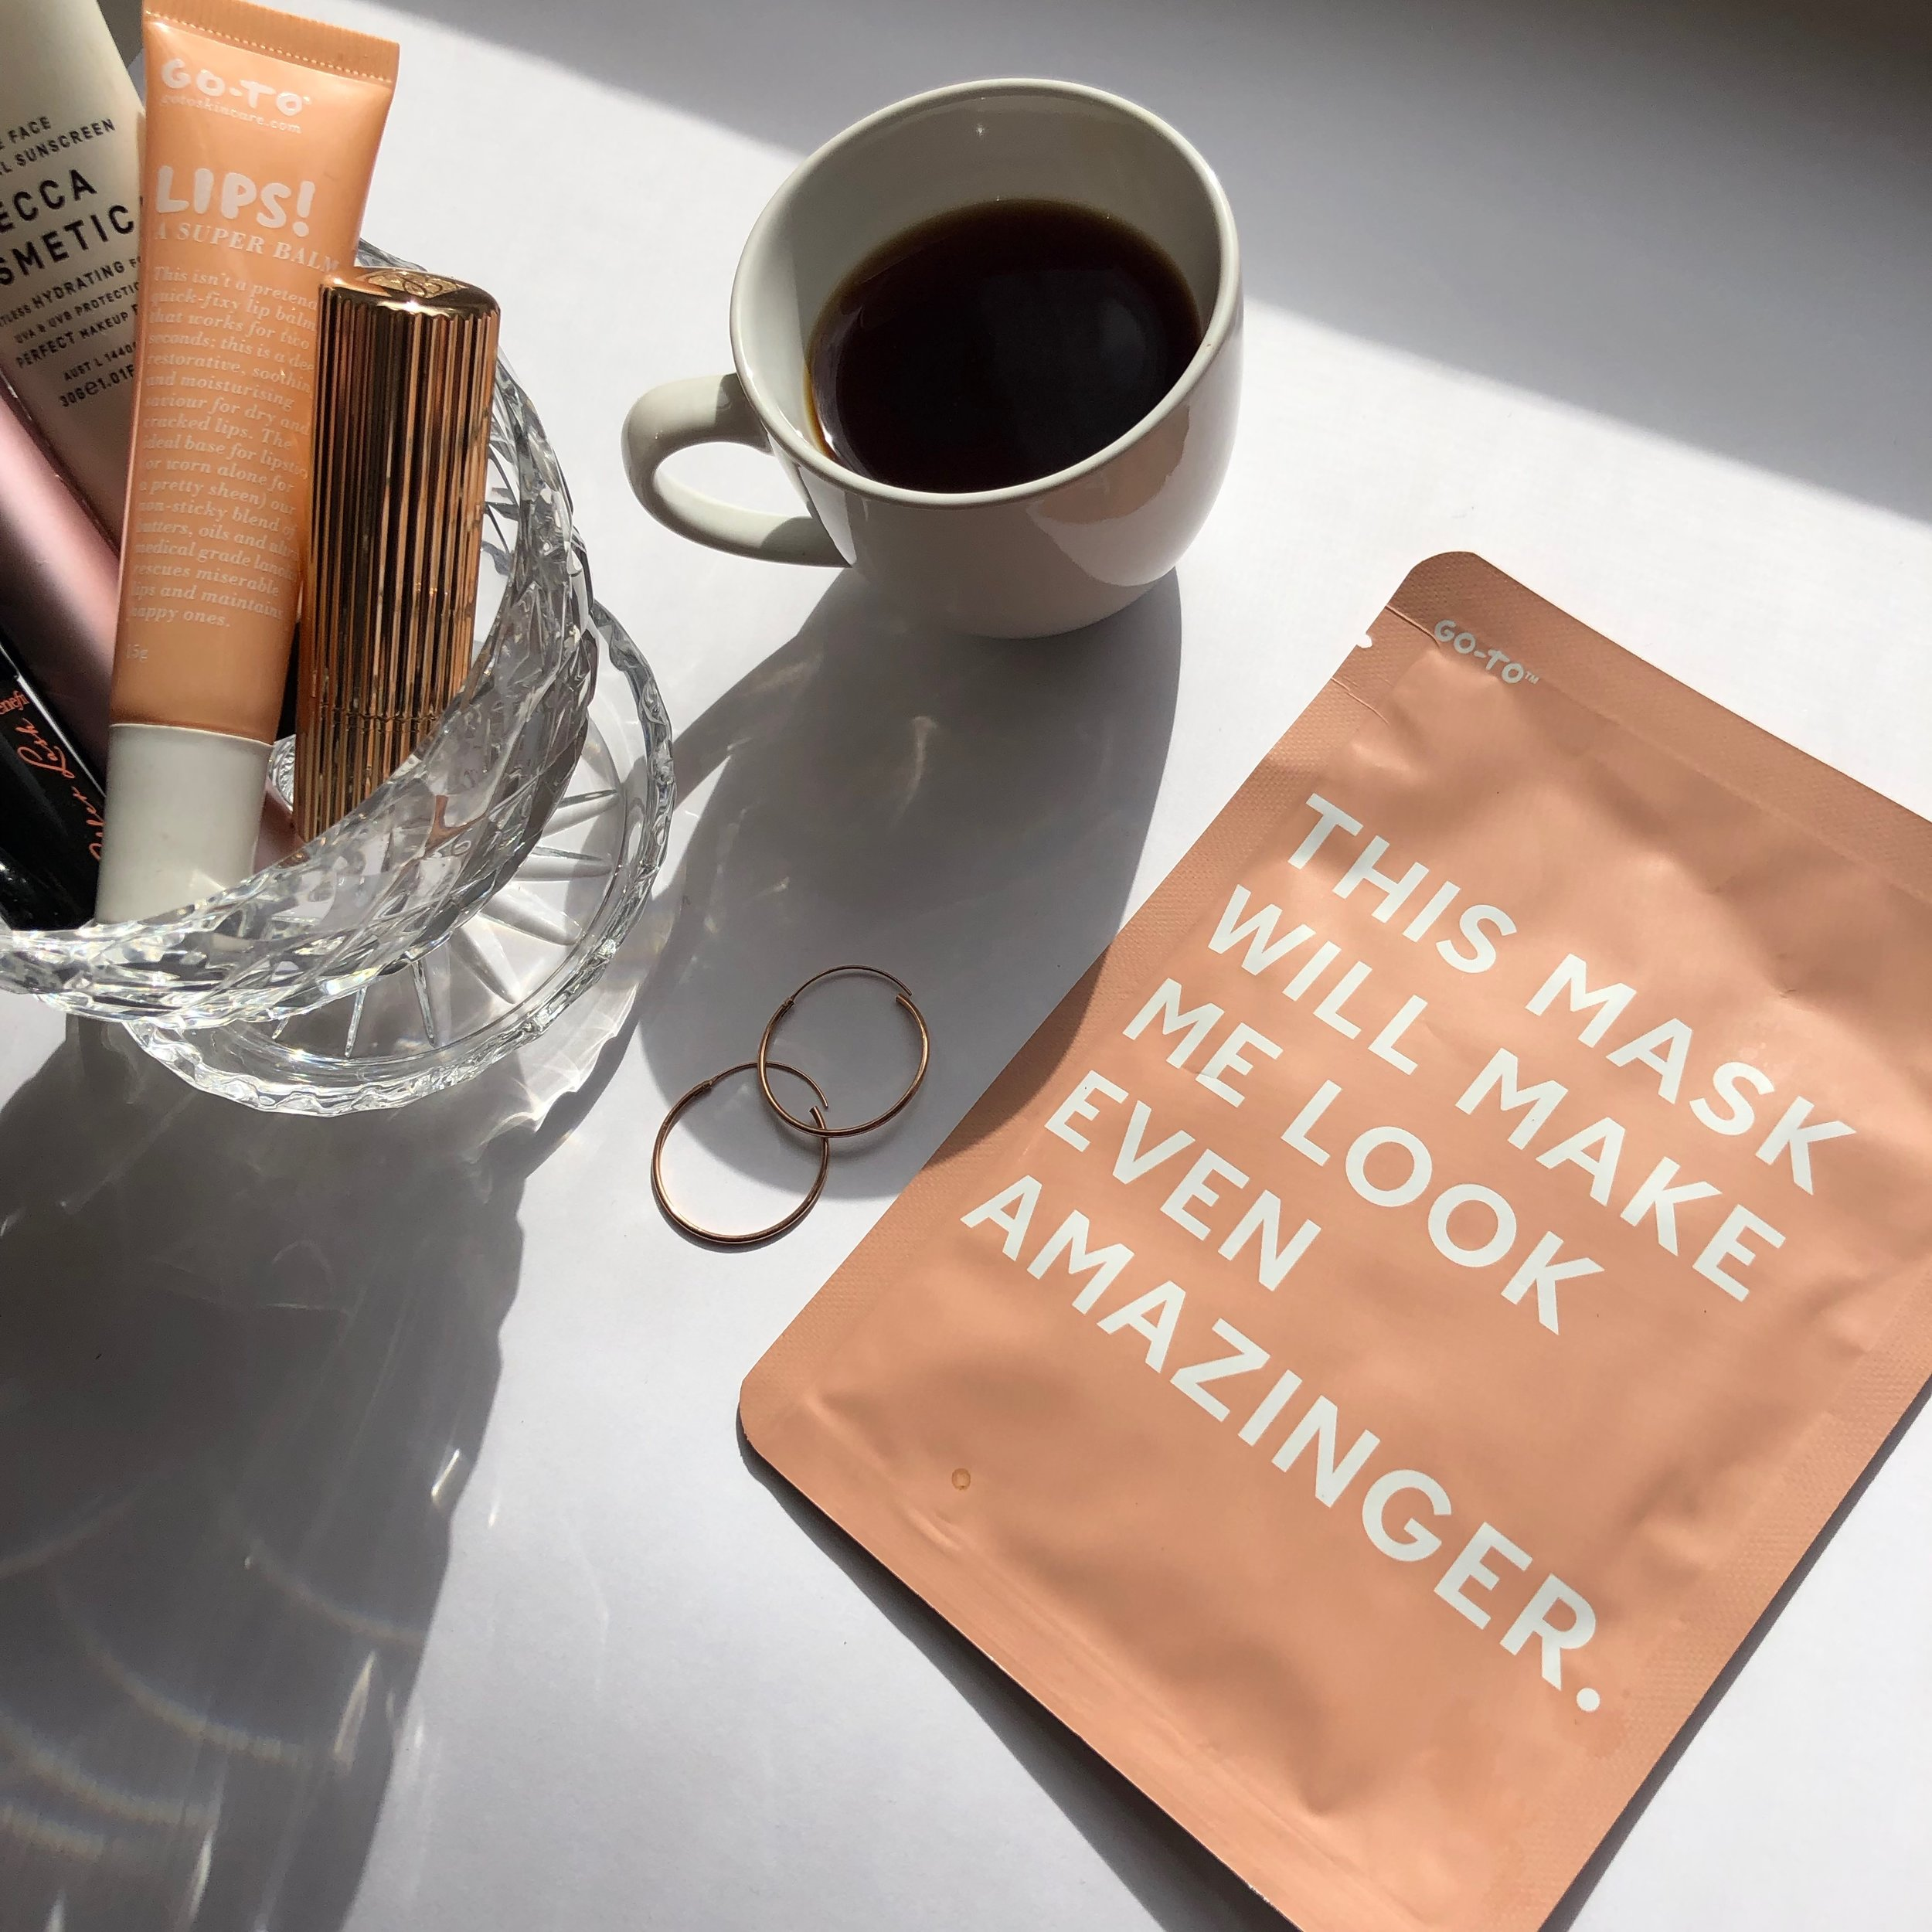 Social Media Copy:The Sheet Mask - It's now a staple in your routine.